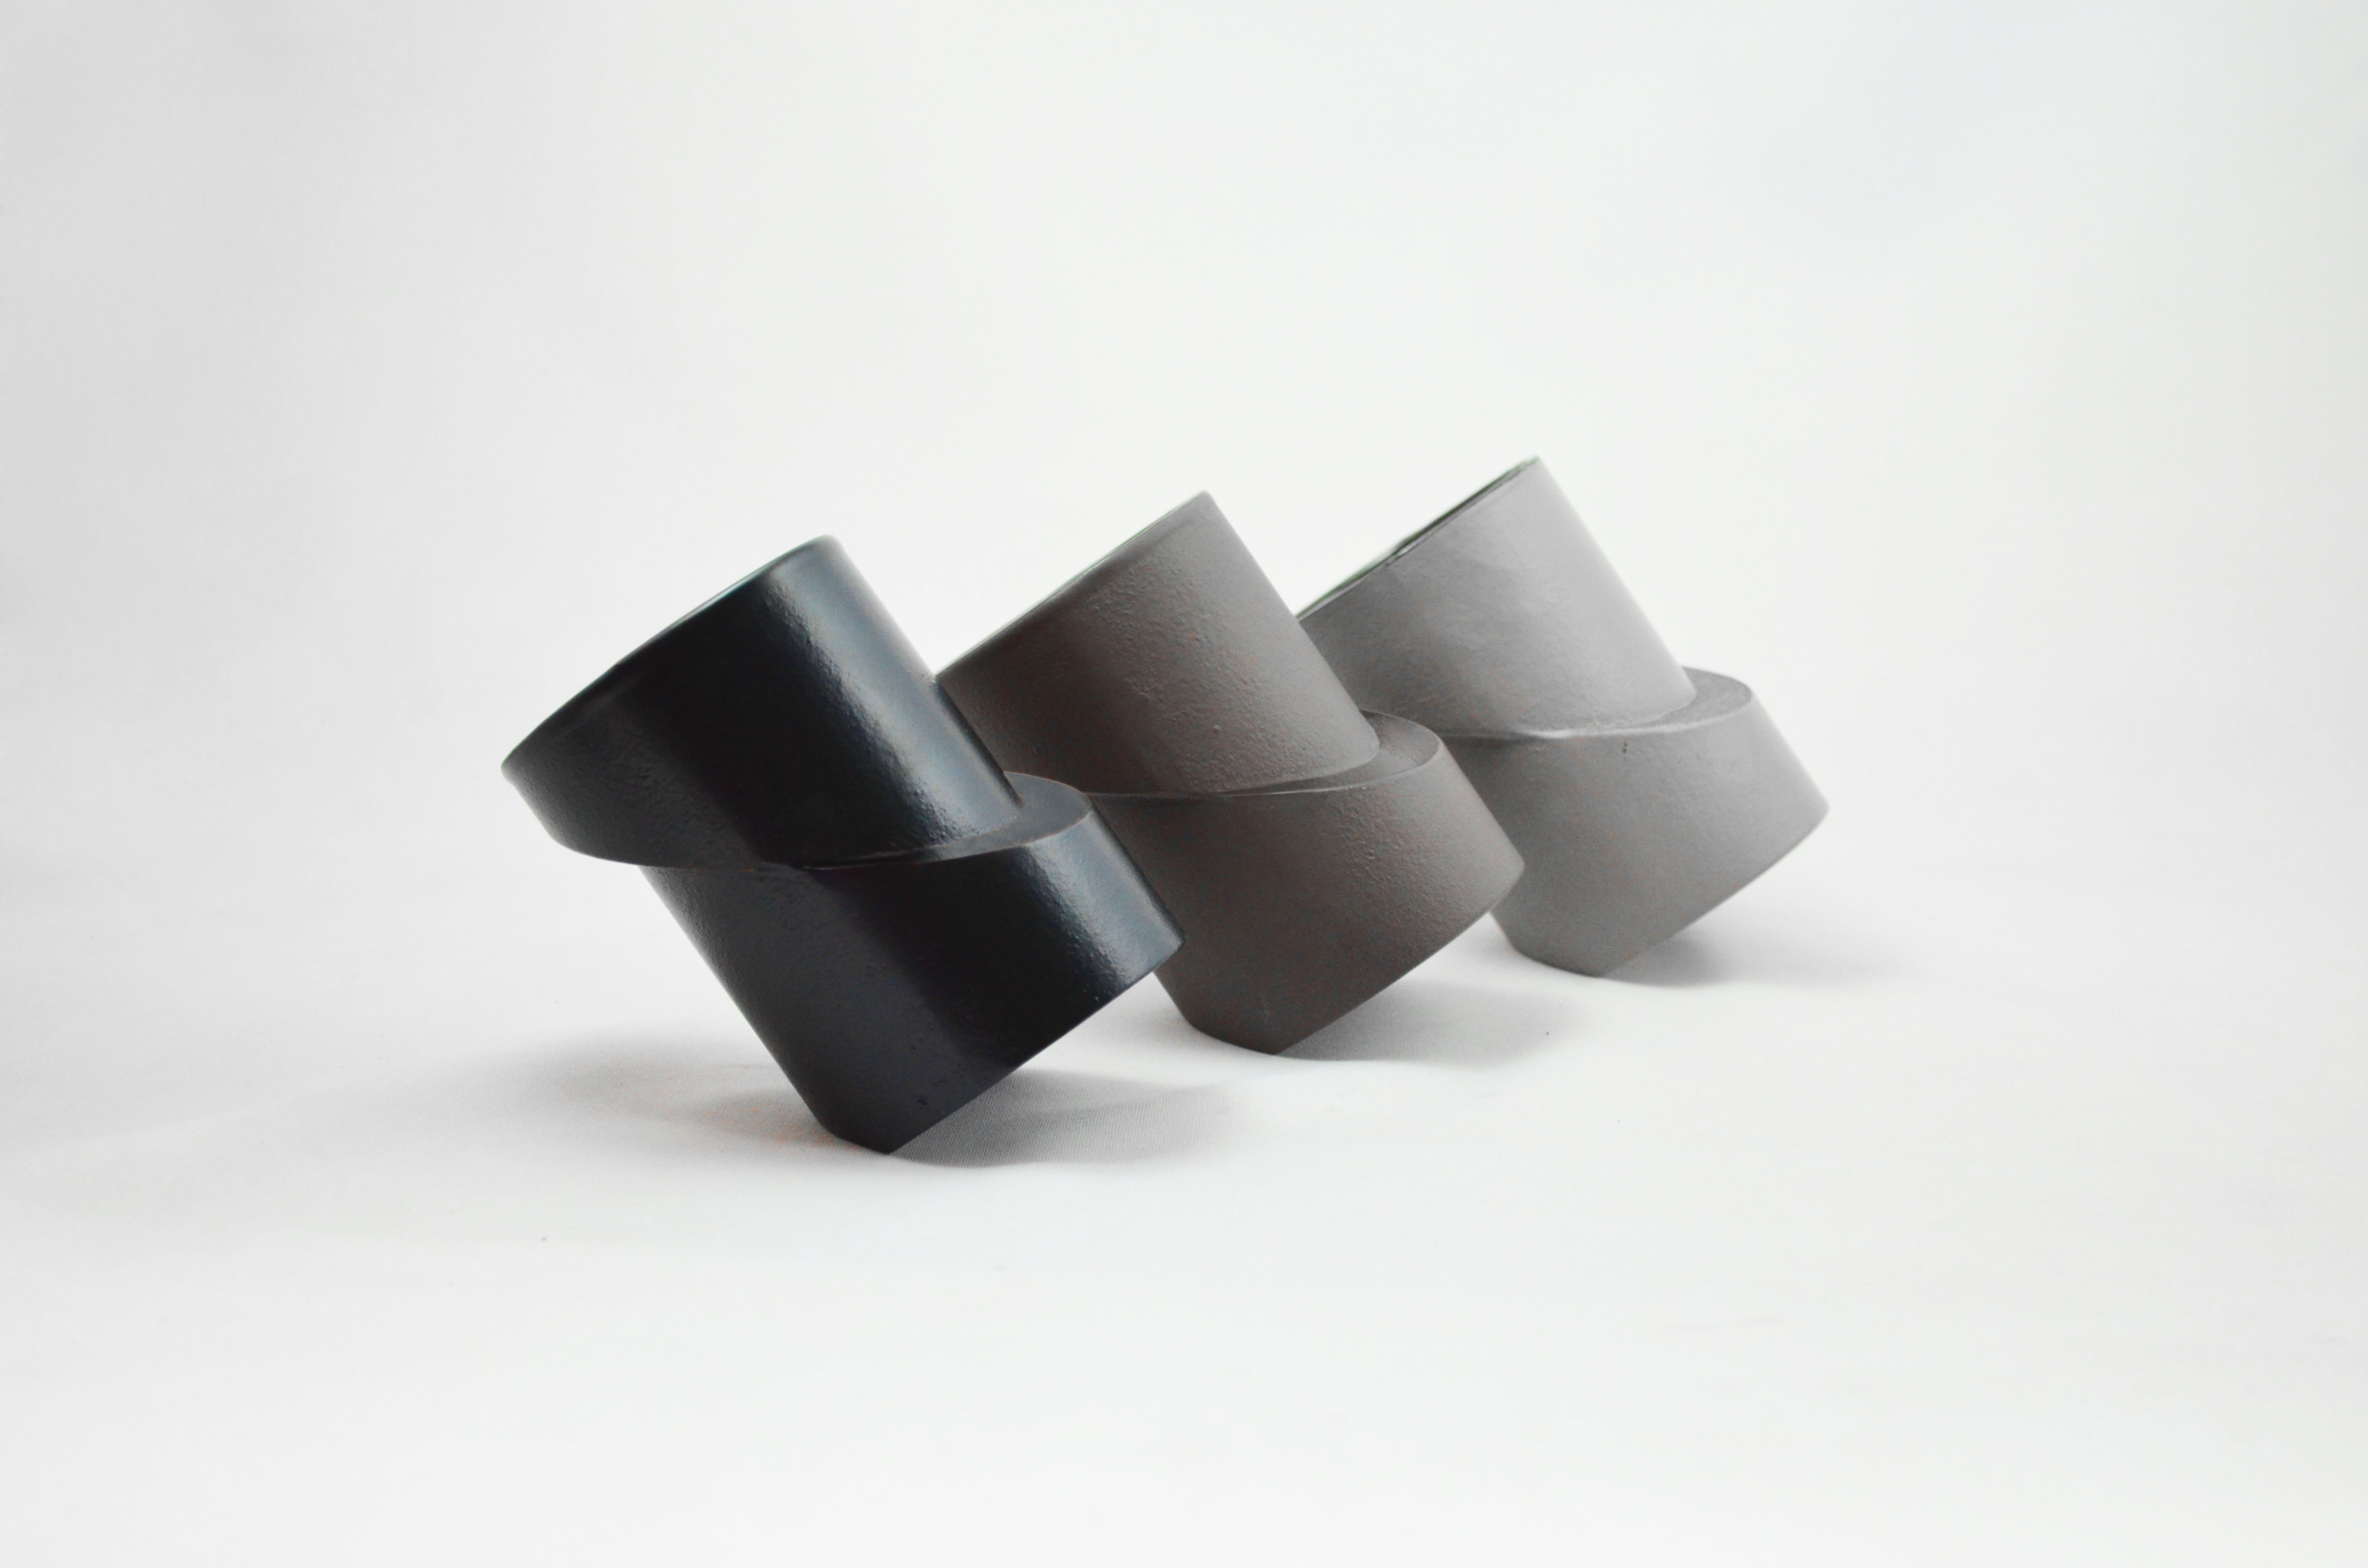 001_cups_as_identity